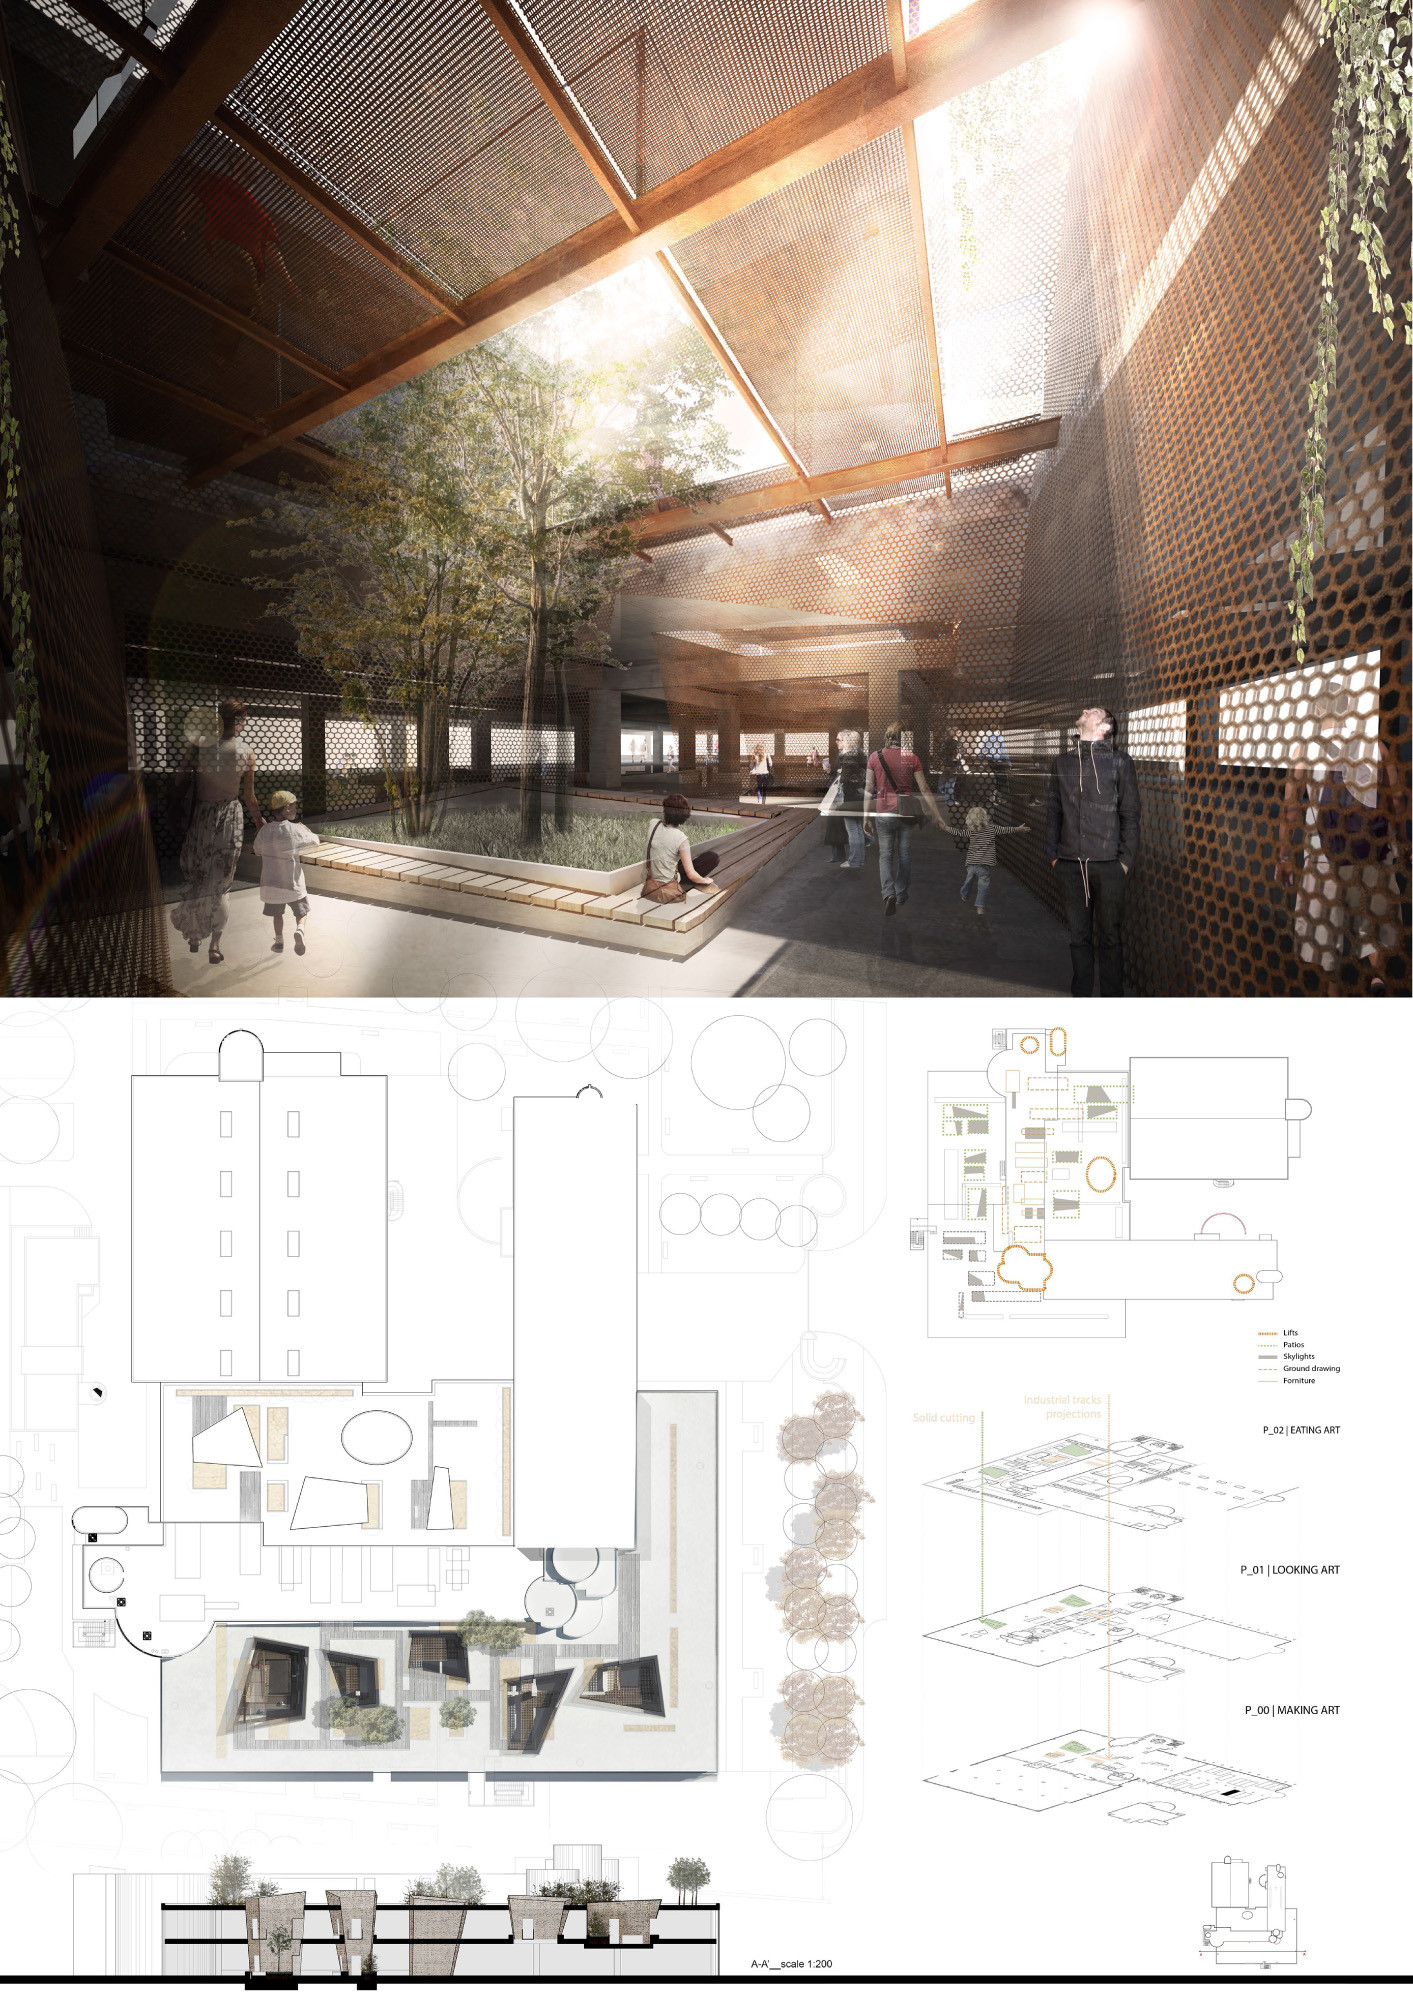 Gallery of competition asks young architects to transform for Architecture house design competitions